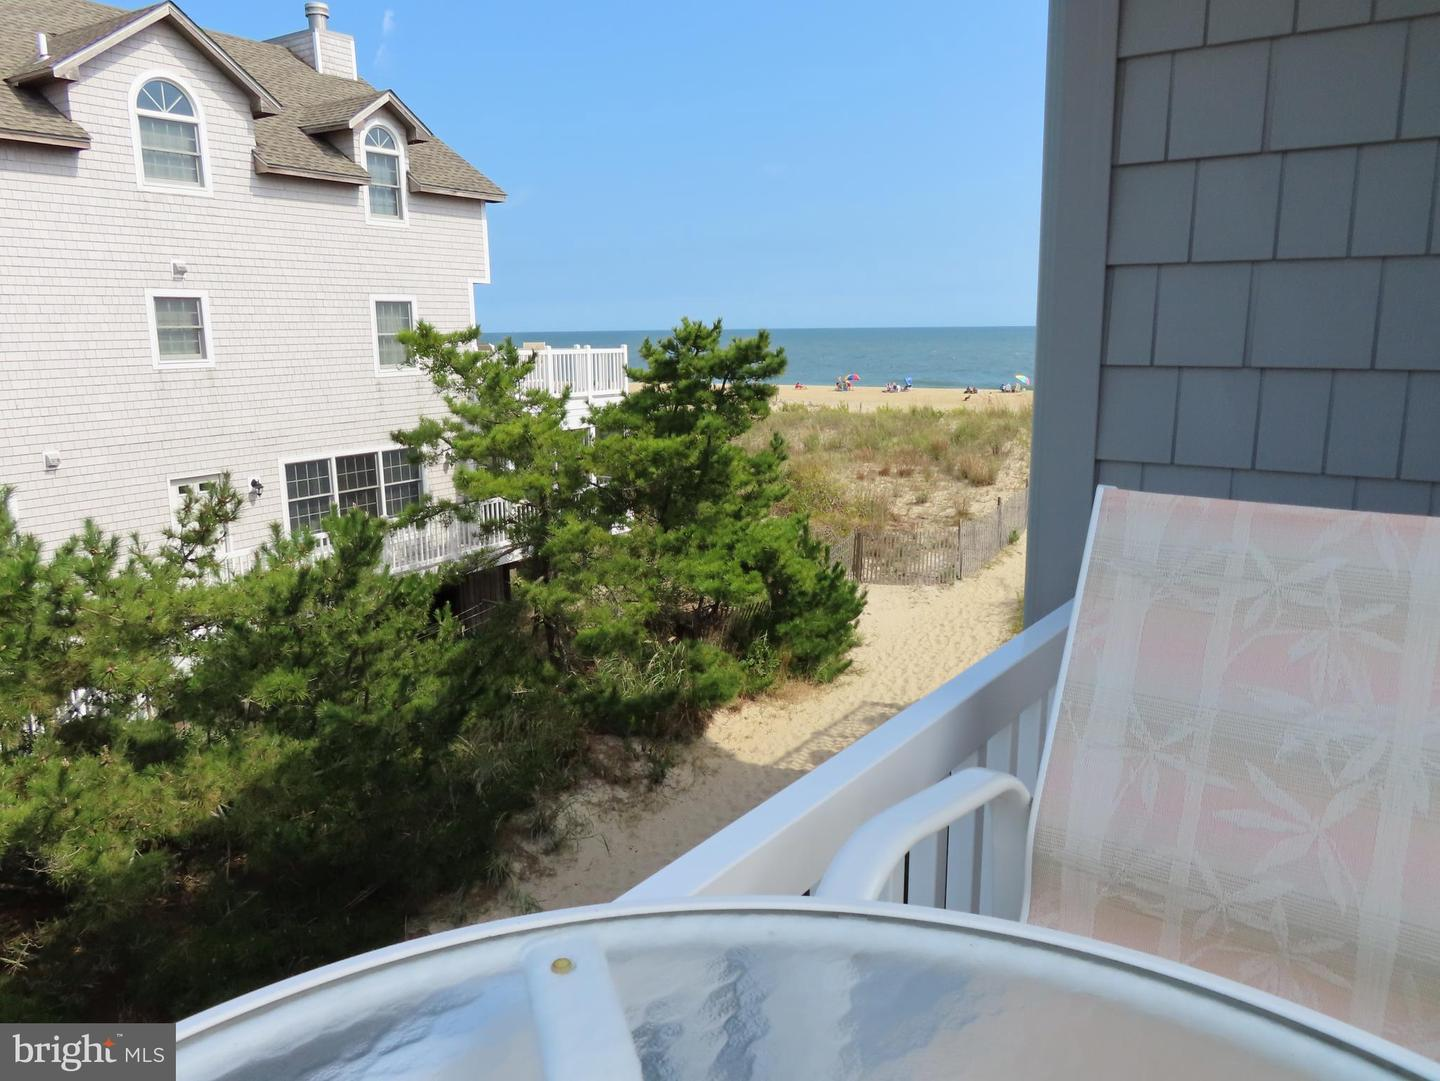 DESU148906-302085632047-2019-09-30-09-08-56 38799 Bunting Ave #1 | Fenwick Island, DE Real Estate For Sale | MLS# Desu148906  - Jack Lingo REALTOR